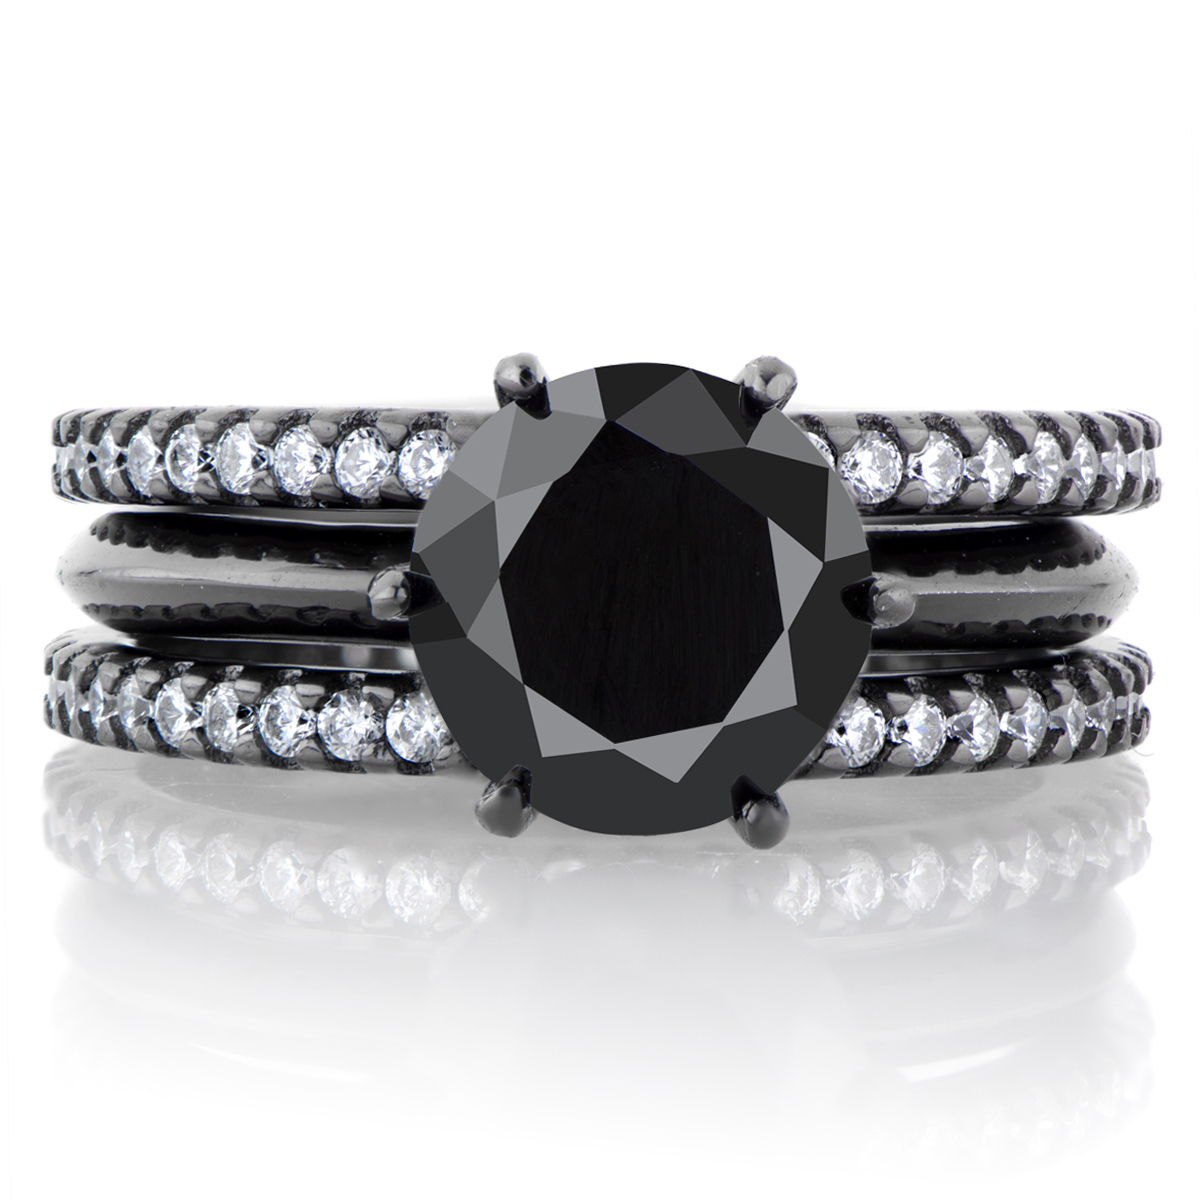 enyas black cz triple row wedding ring set roll off image to close zoom window - Black Wedding Rings Sets